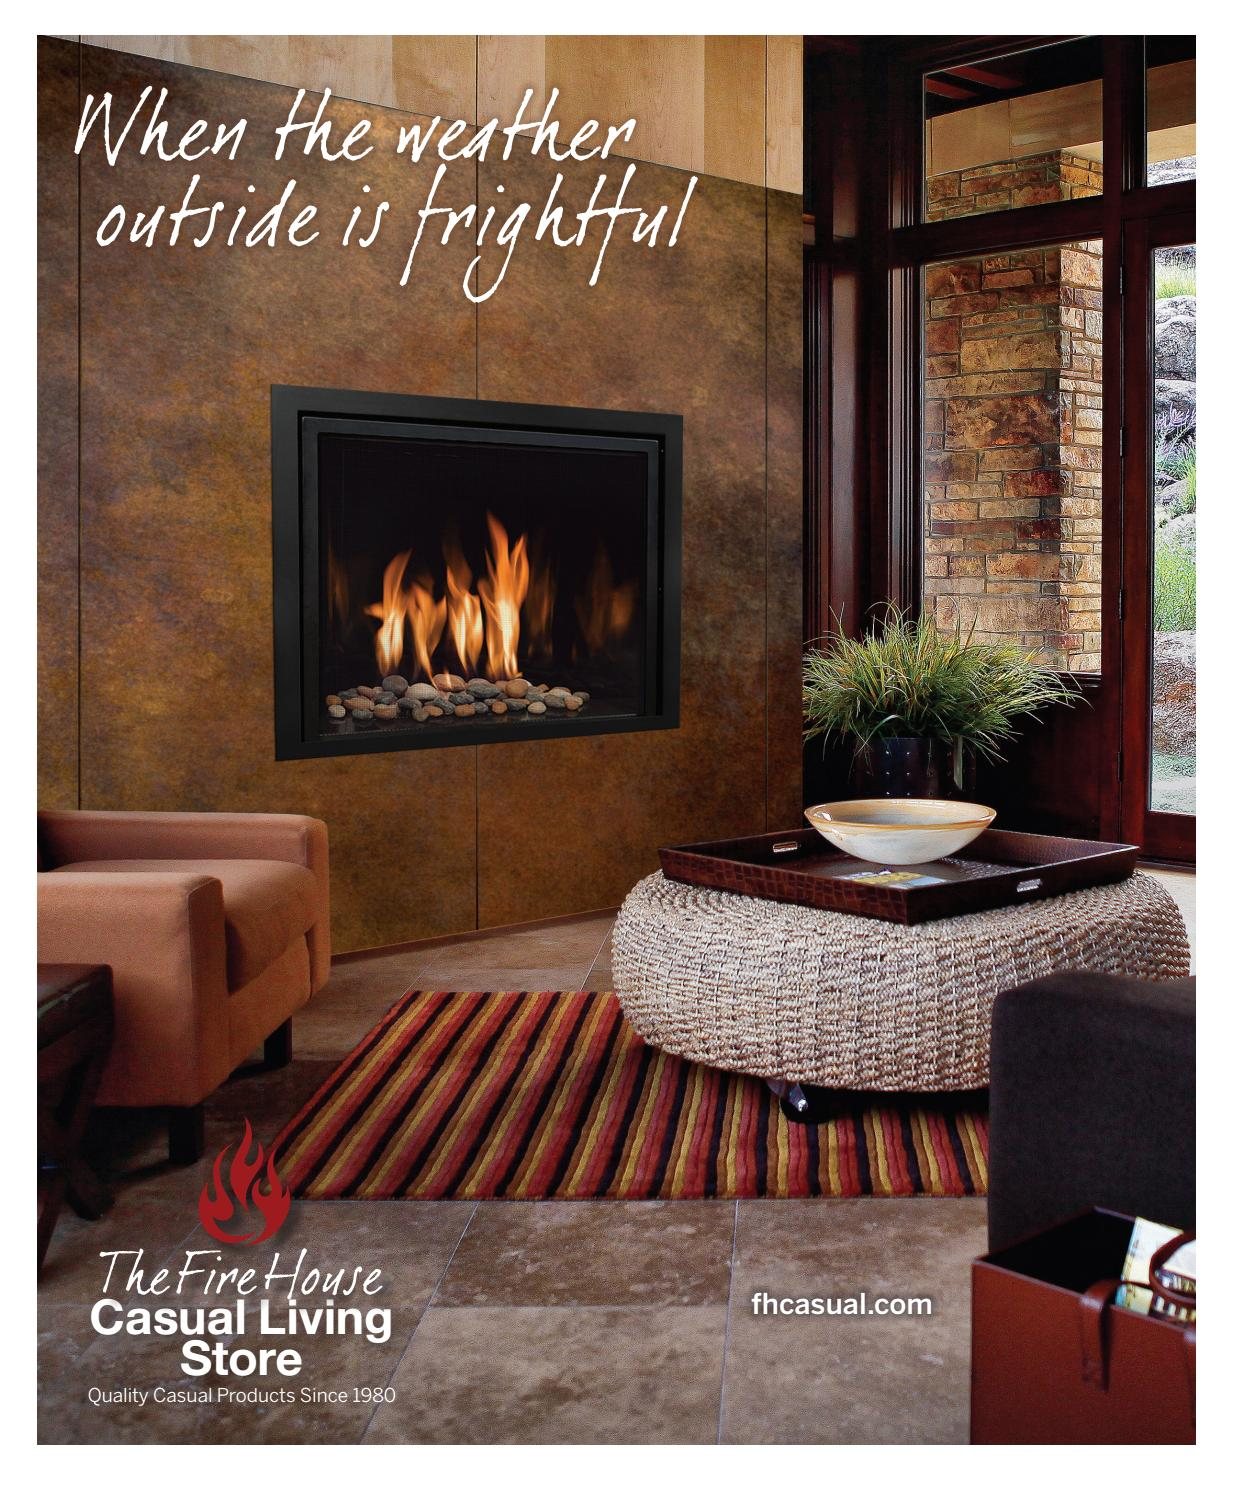 Fire House Casual Living Store Fall Winter Sale - Fire ... on Fireplace Casual Living id=43384